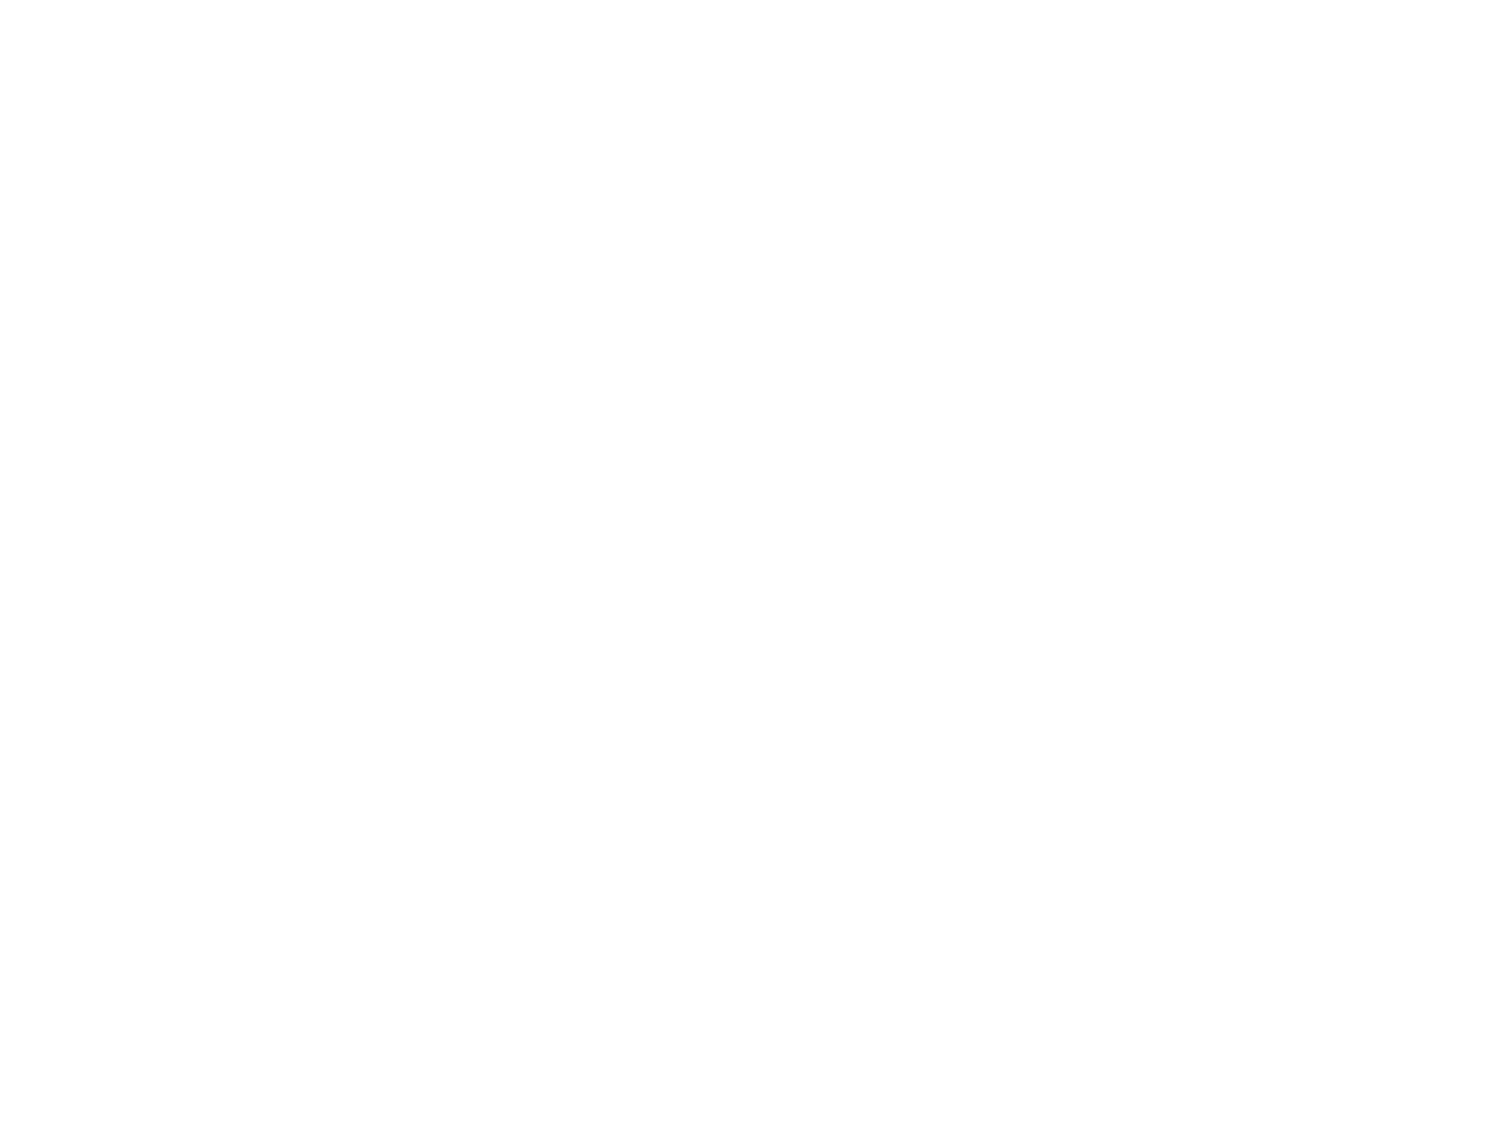 Archers Association of America (AAoA)